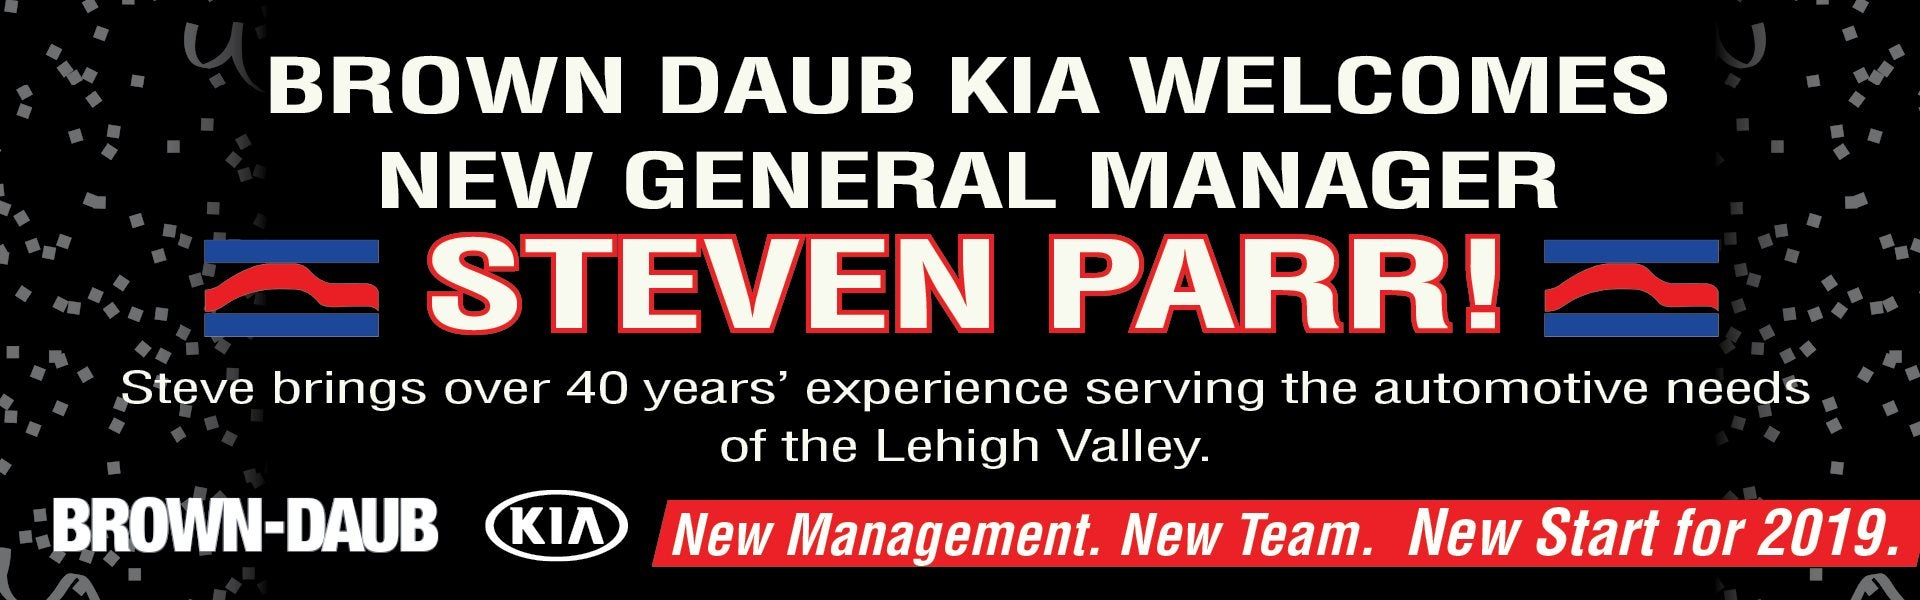 Brown Daub Kia >> Brown-Daub Kia | Kia Dealer in Easton, PA | Used Cars Easton